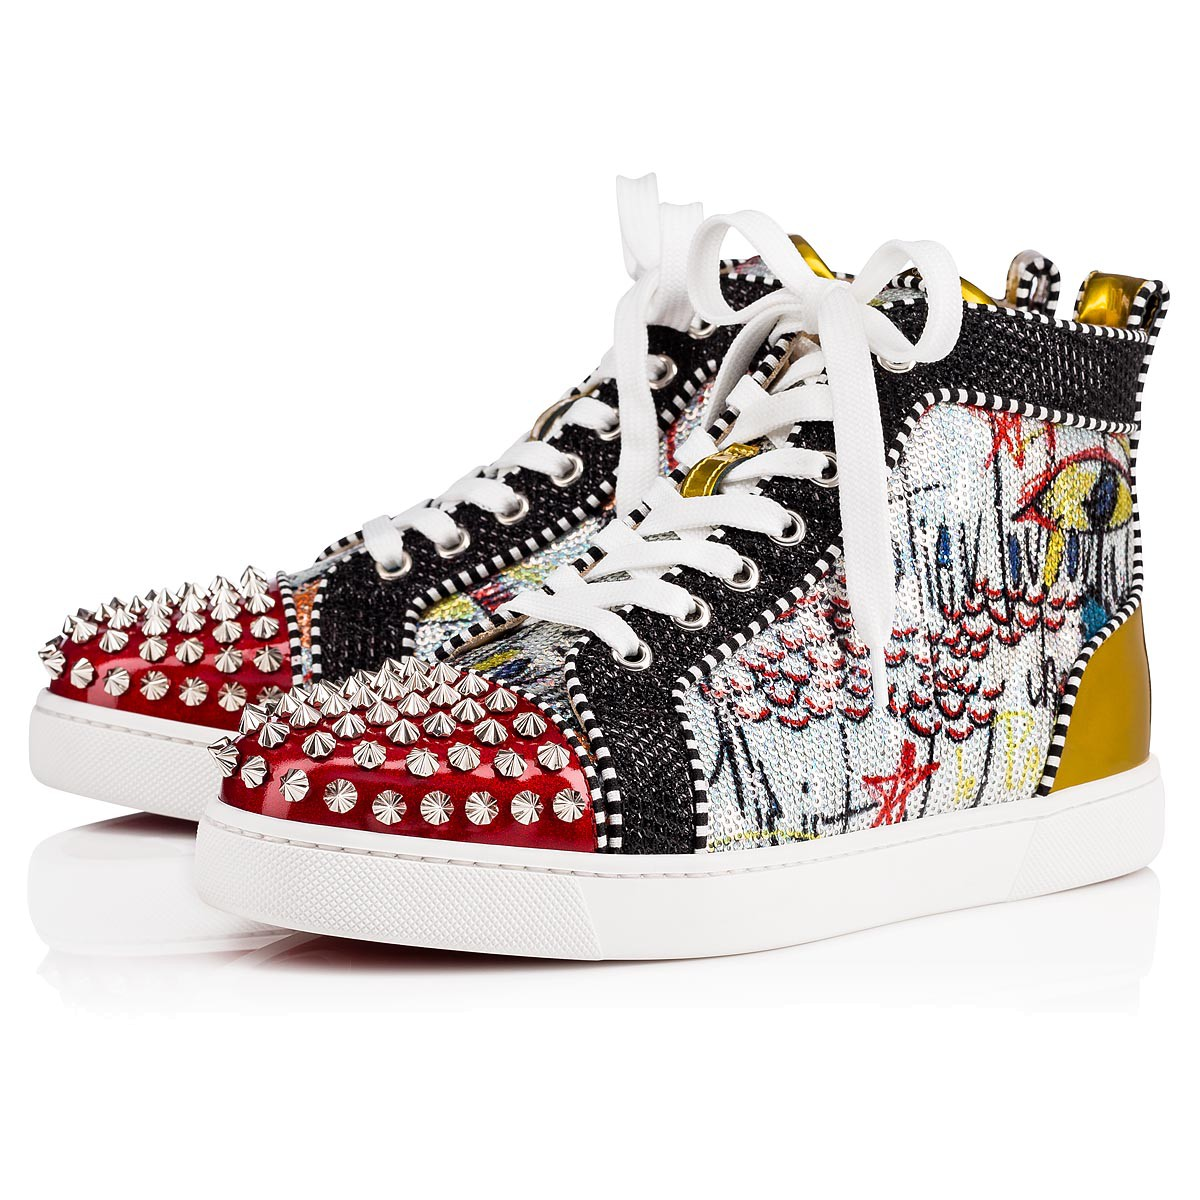 01226271dcb Christian Louboutin High Top Silver Spikes Men Shoes Lou Spikes Woman Flat